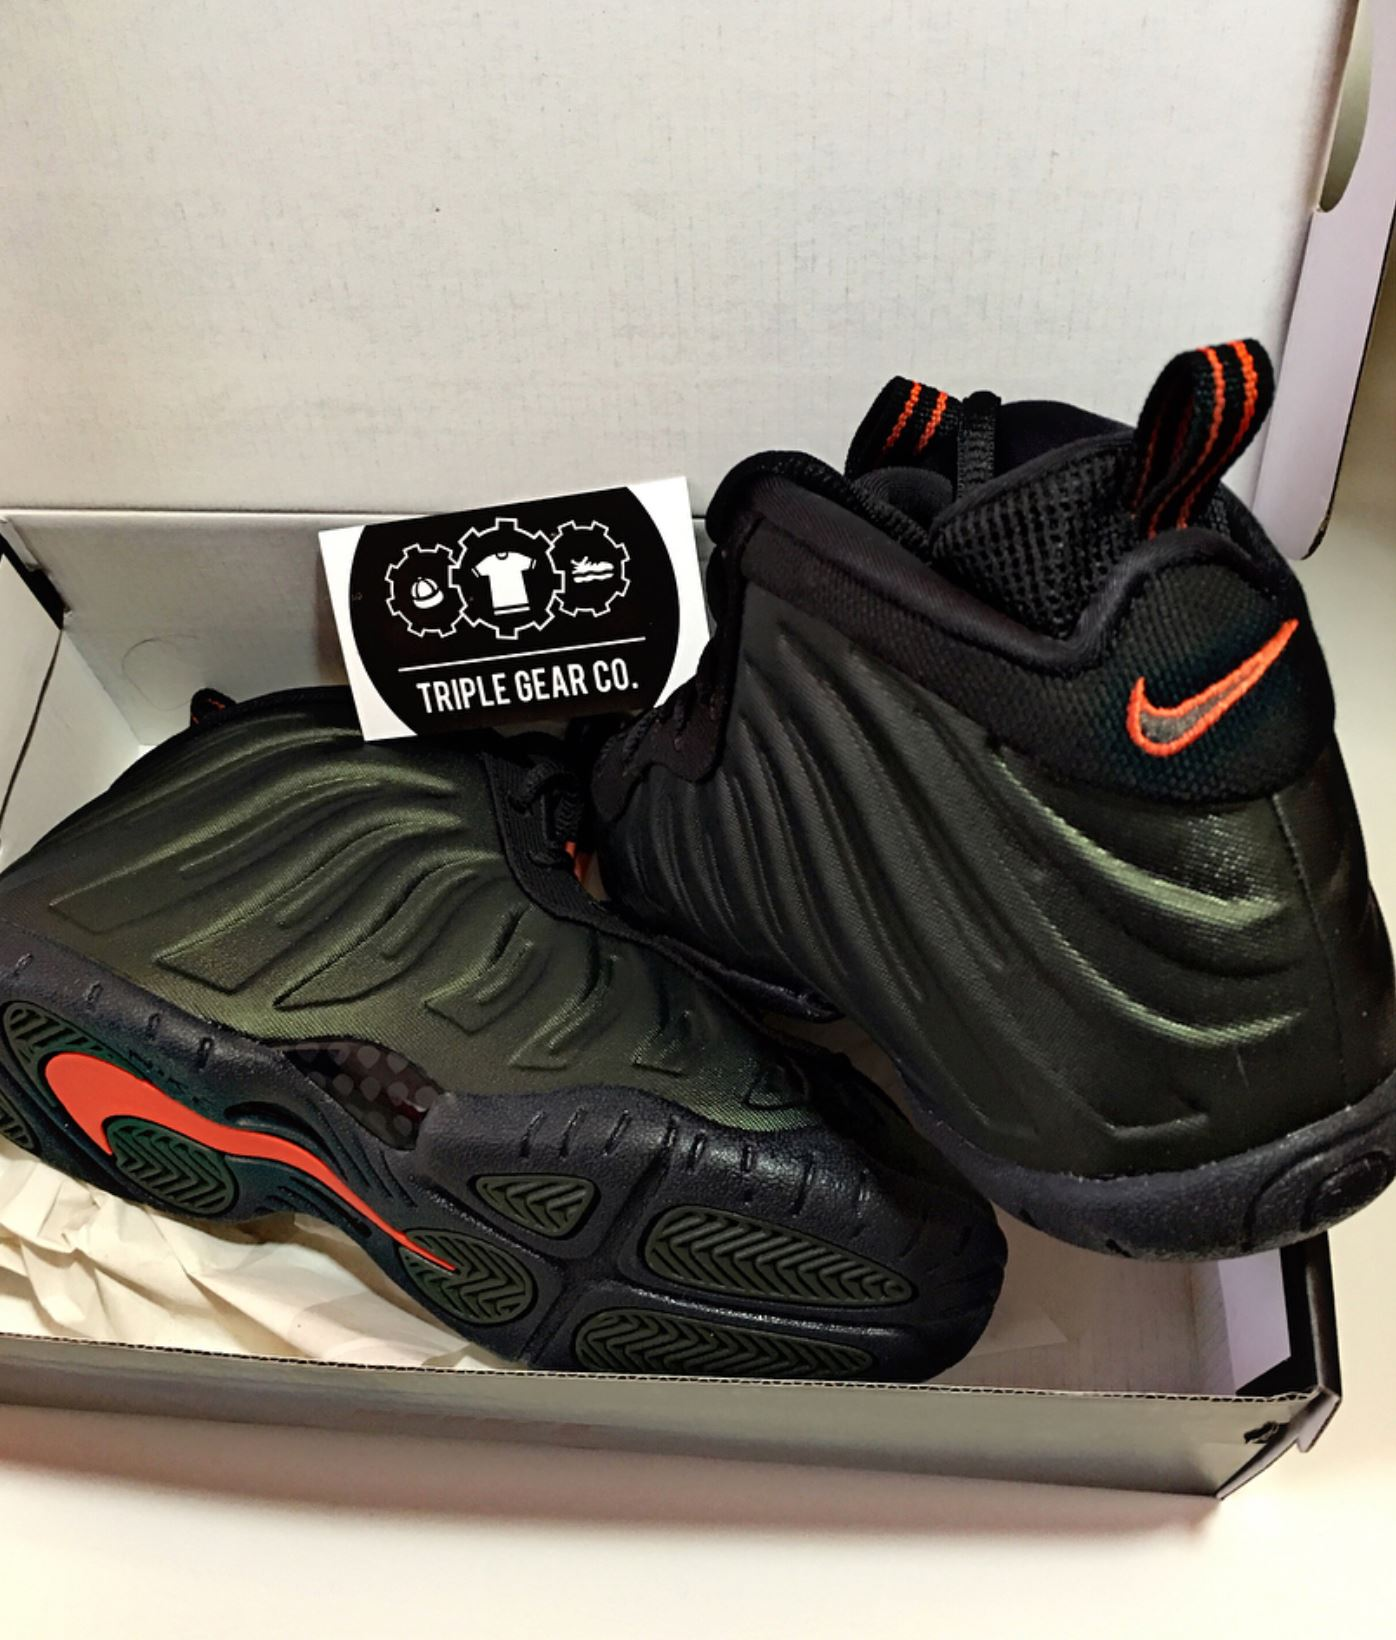 competitive price d2529 60d21 nike air foamposite pro sequoia release date 2